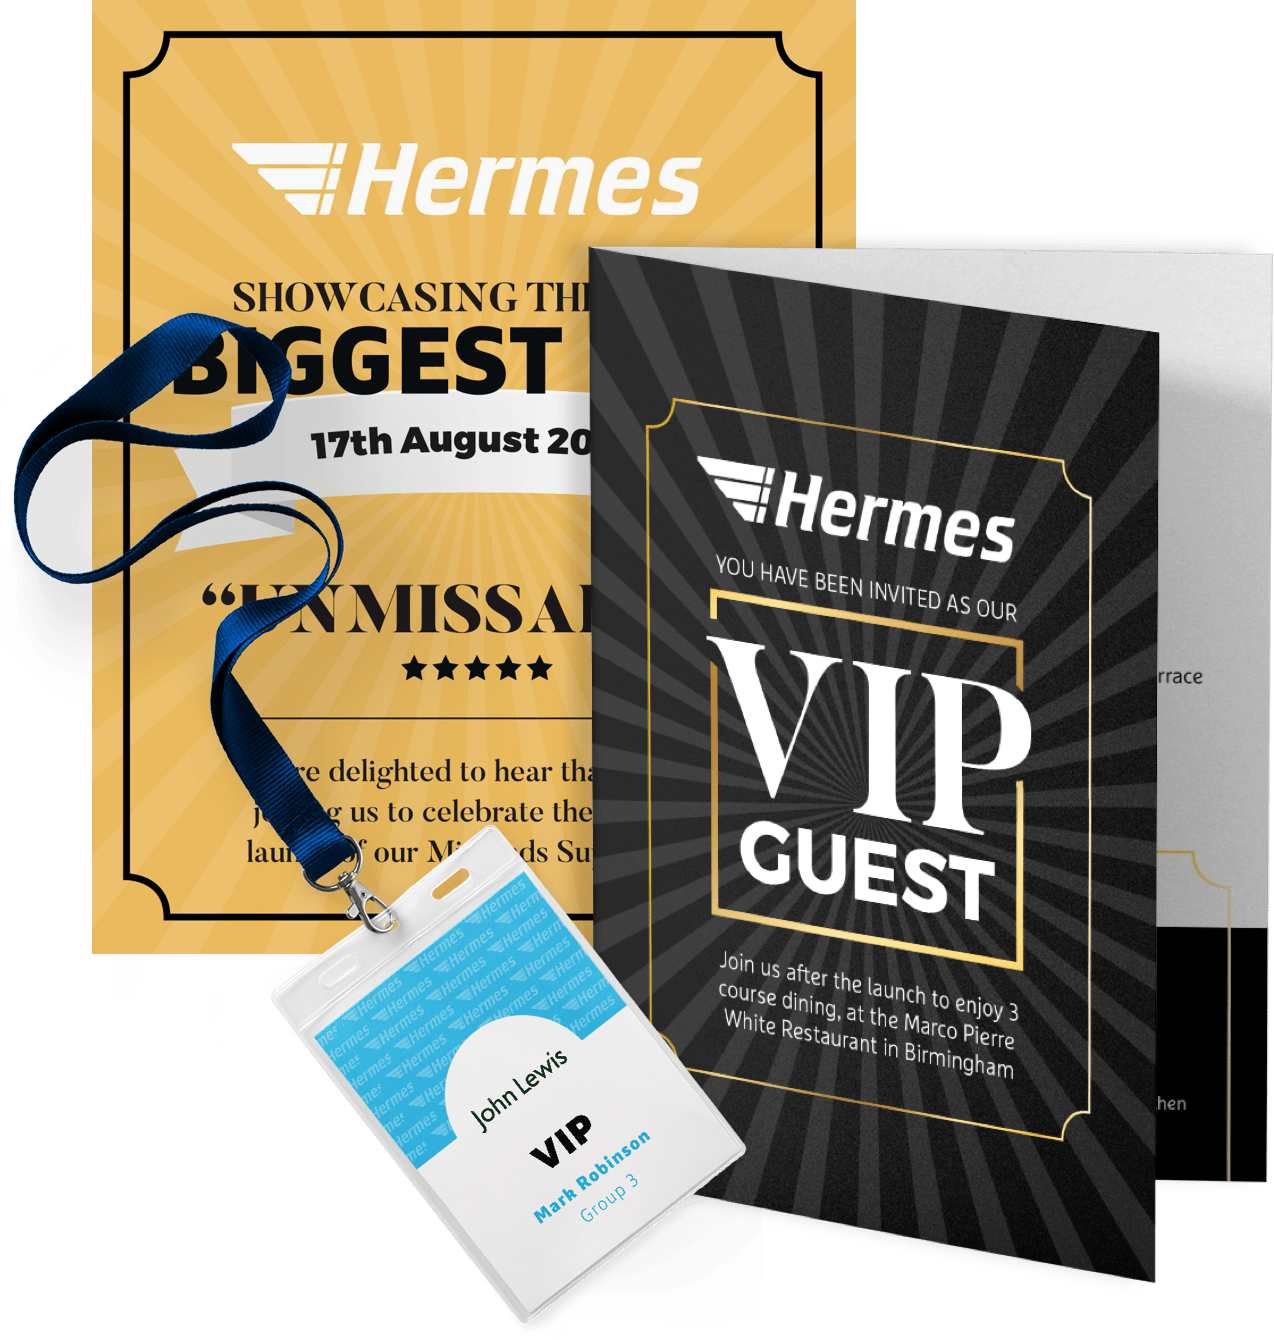 hermes-invitation-collateral.png